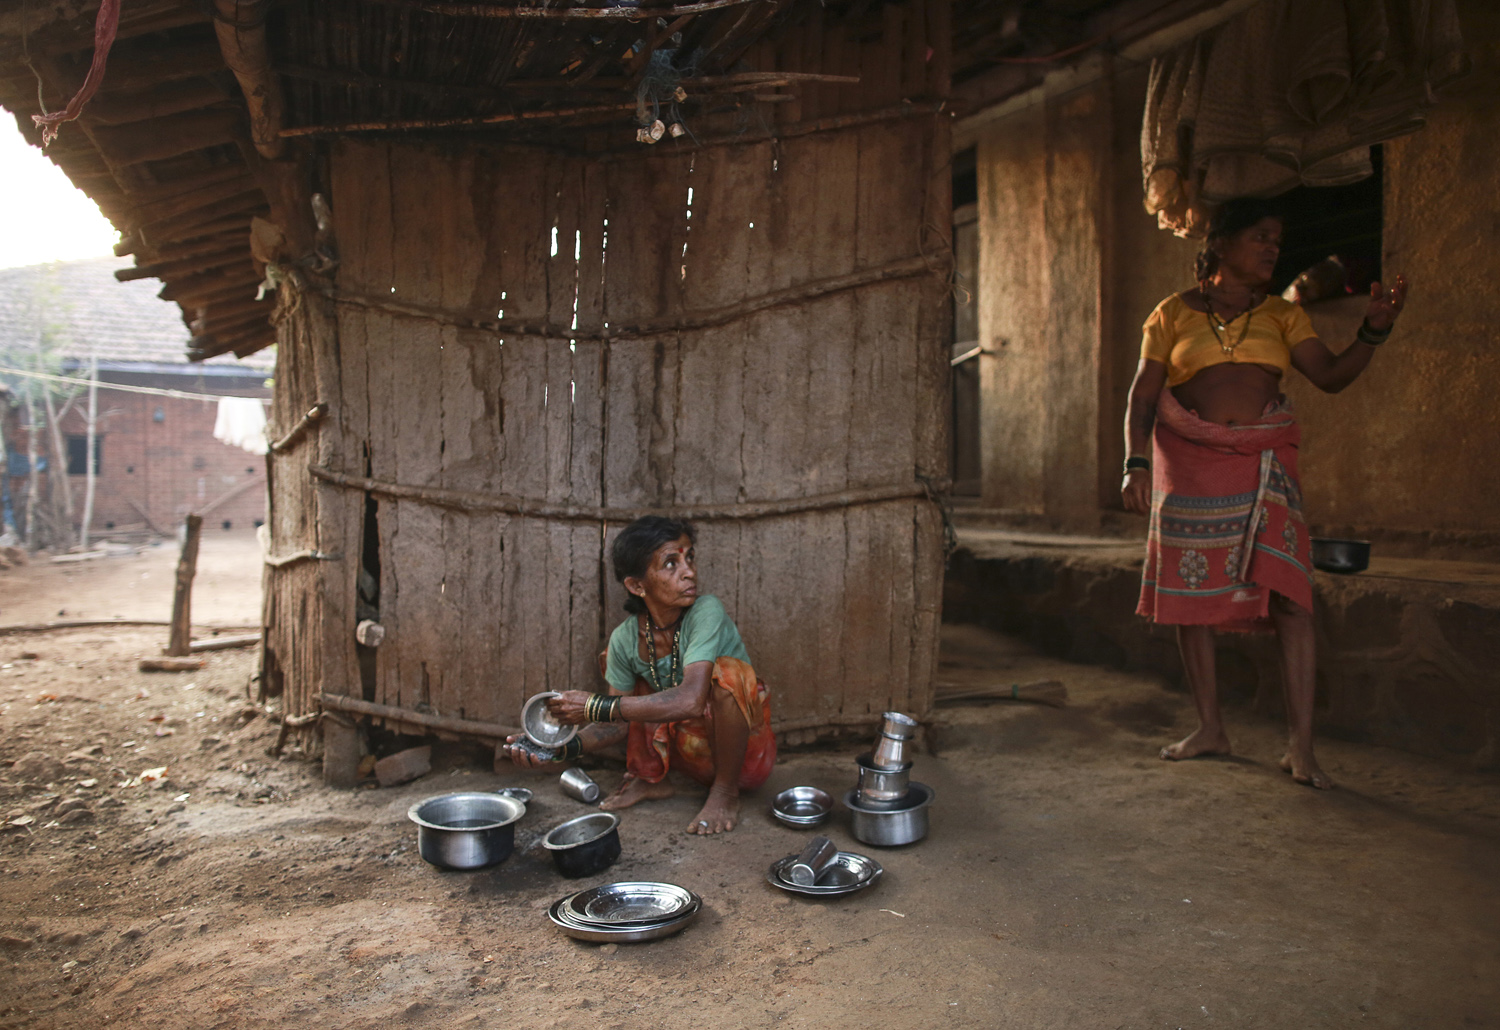 Sakhri (L), the second wife of Sakharam Bhagat, listens to Tuki, the first wife of Sakharam Bhagat as she washes utensils outside their house in Denganmal village.